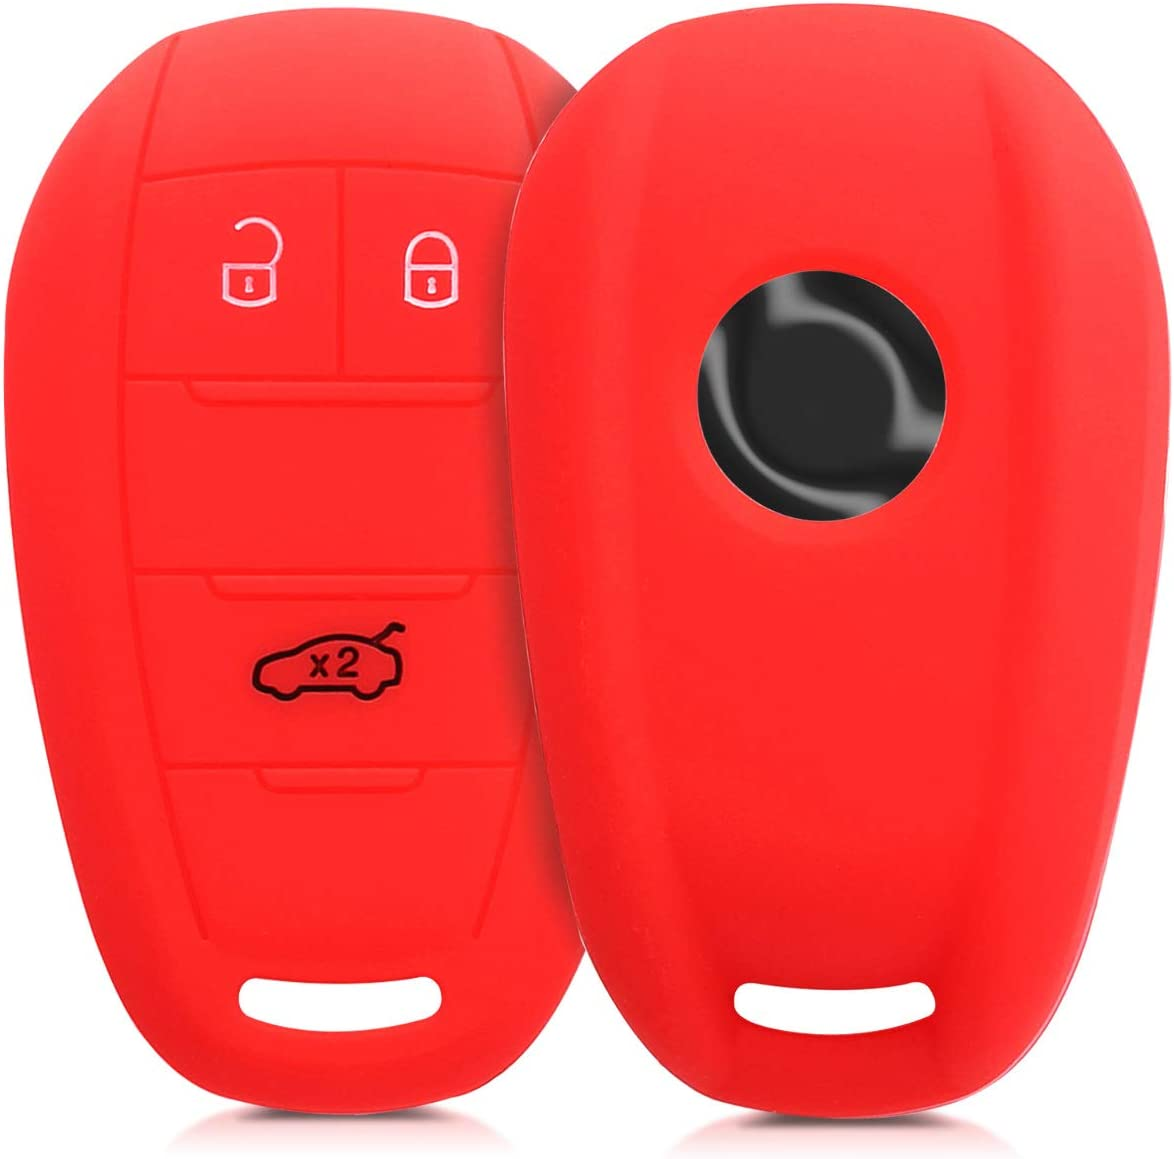 Red Silicone Protective Key Fob Cover for Alfa Romeo 3 Button Remote Control Car Key kwmobile Car Key Cover for Alfa Romeo